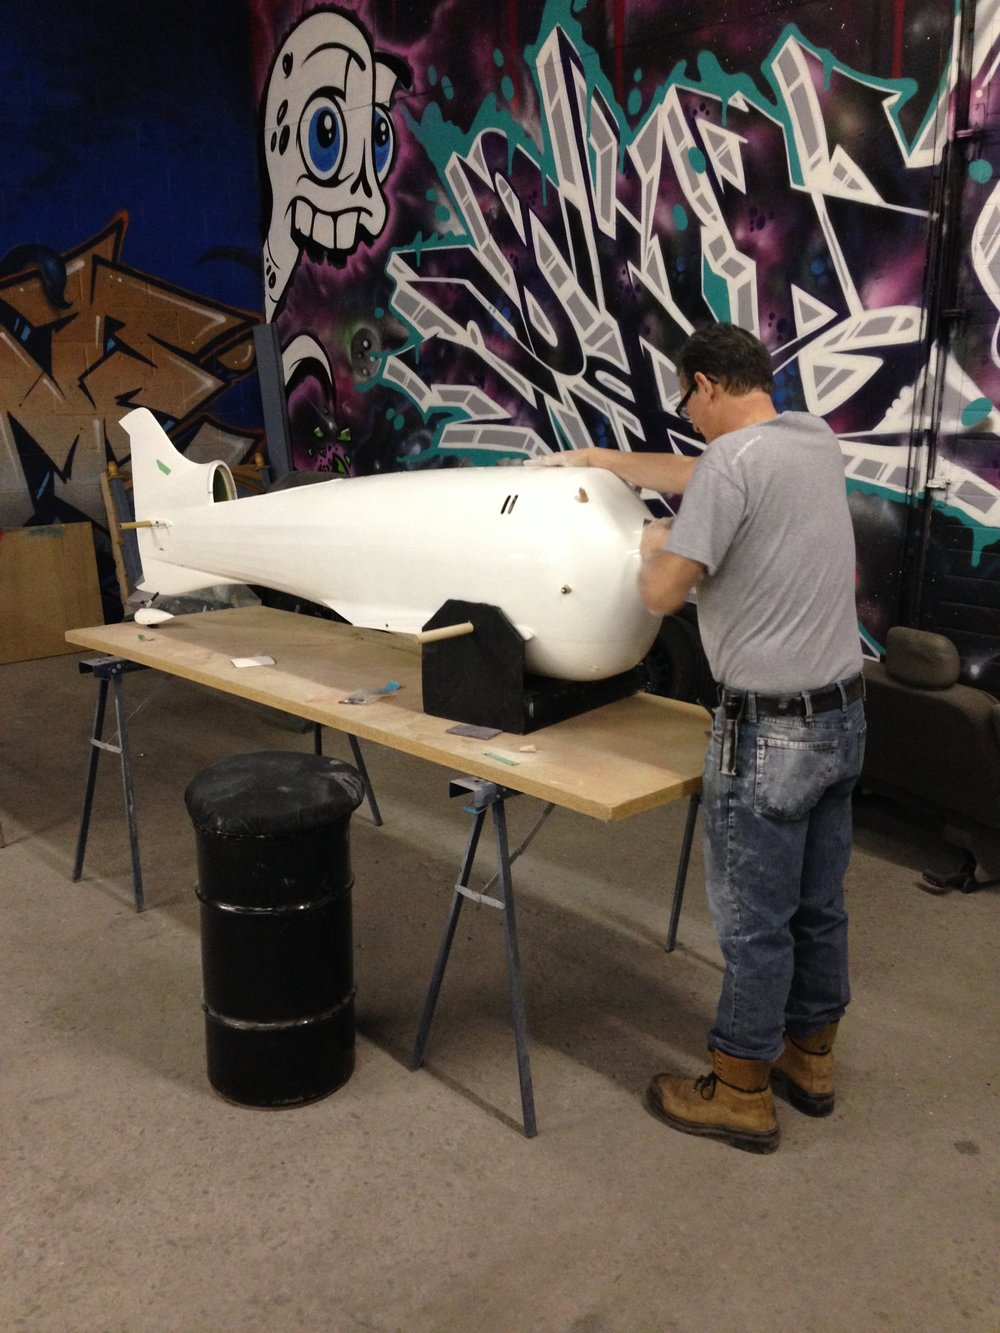 The plane was disassembled and sanded down